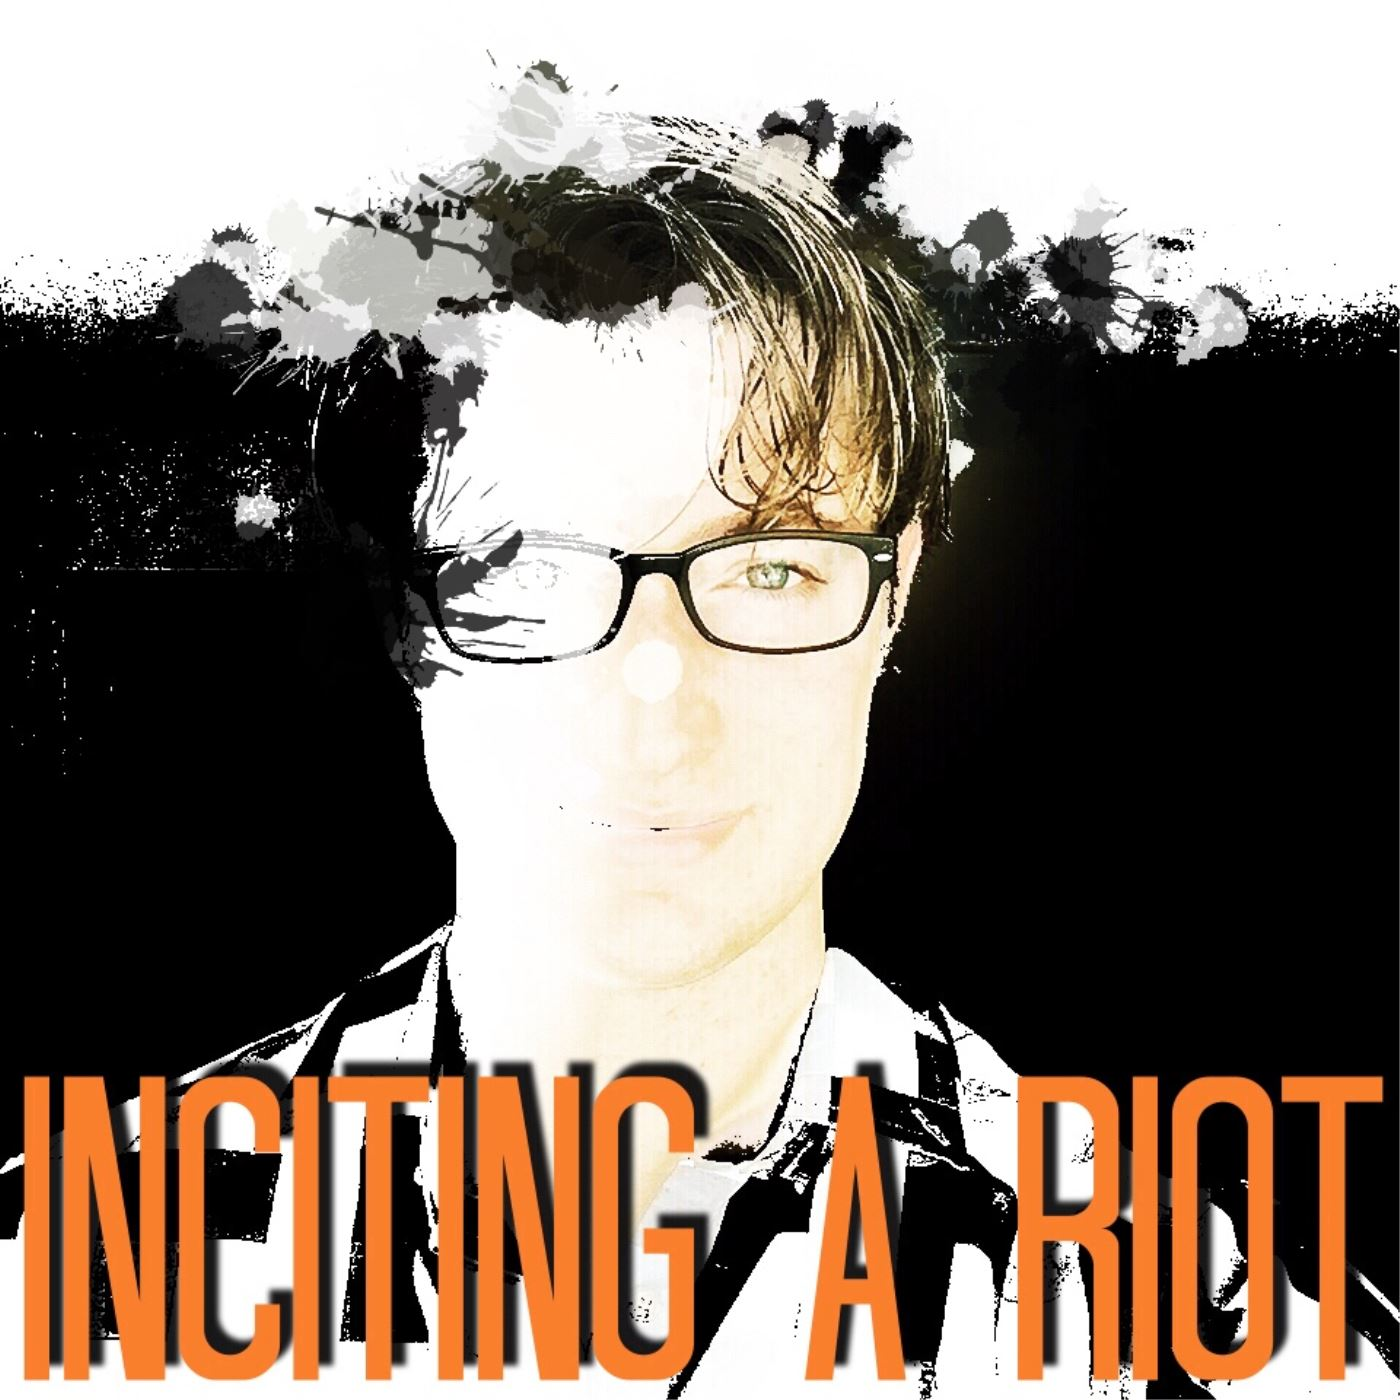 Episode 120: Inciting A Crystal Riot